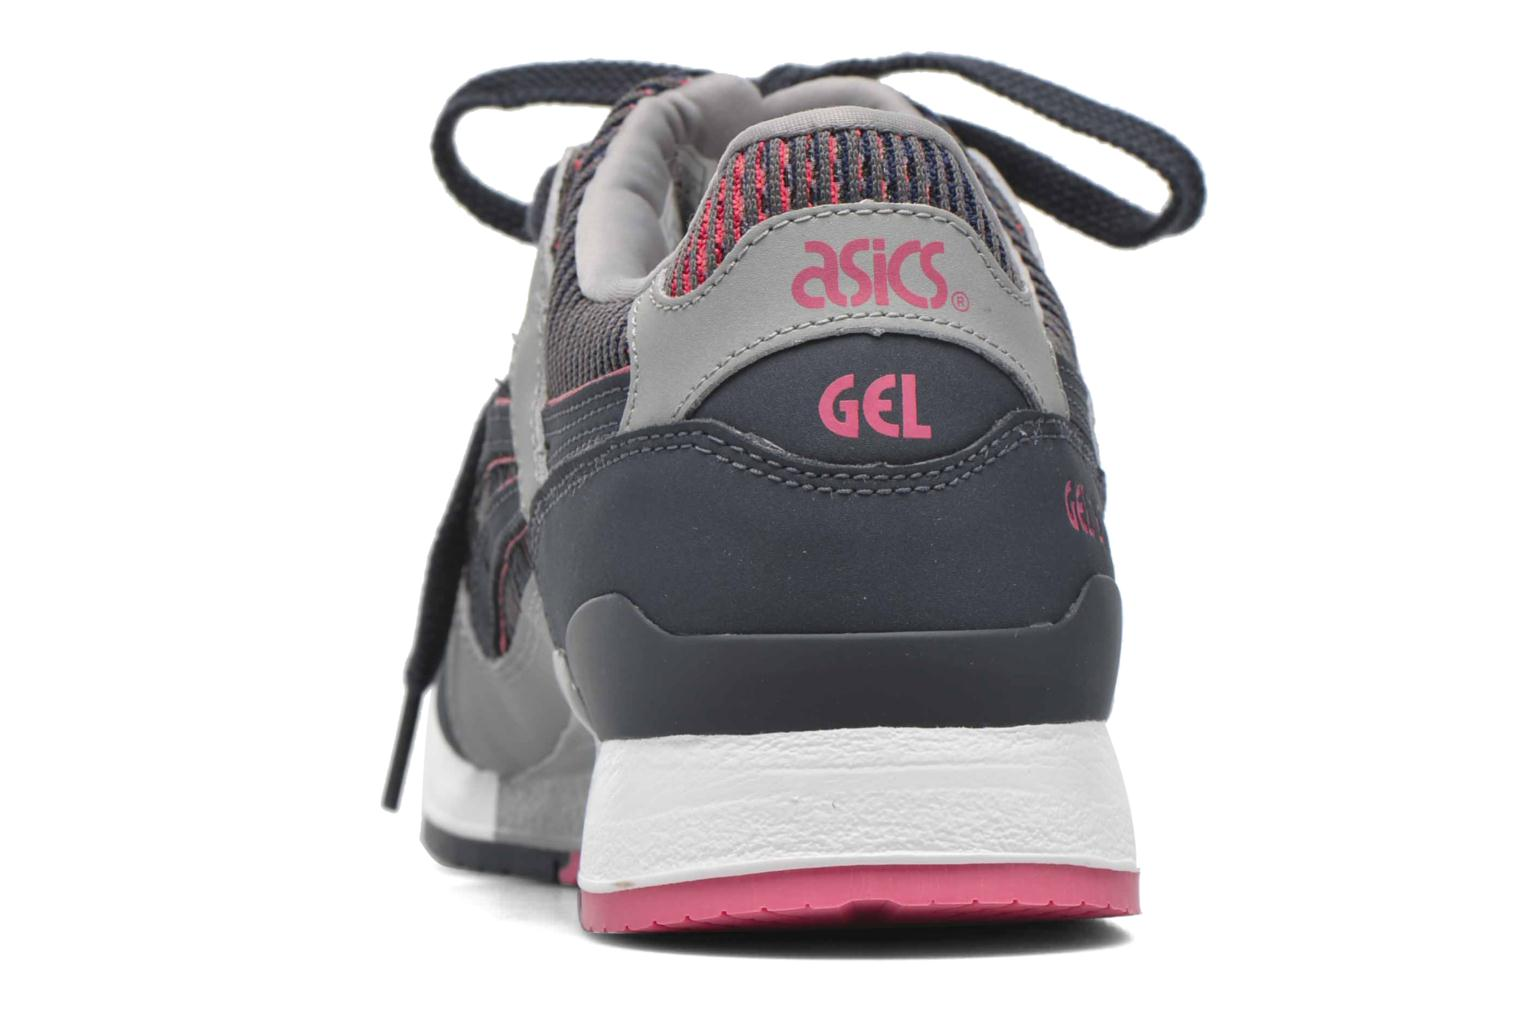 Sport shoes Asics Gel-lyte III chameleoid Multicolor view from the right